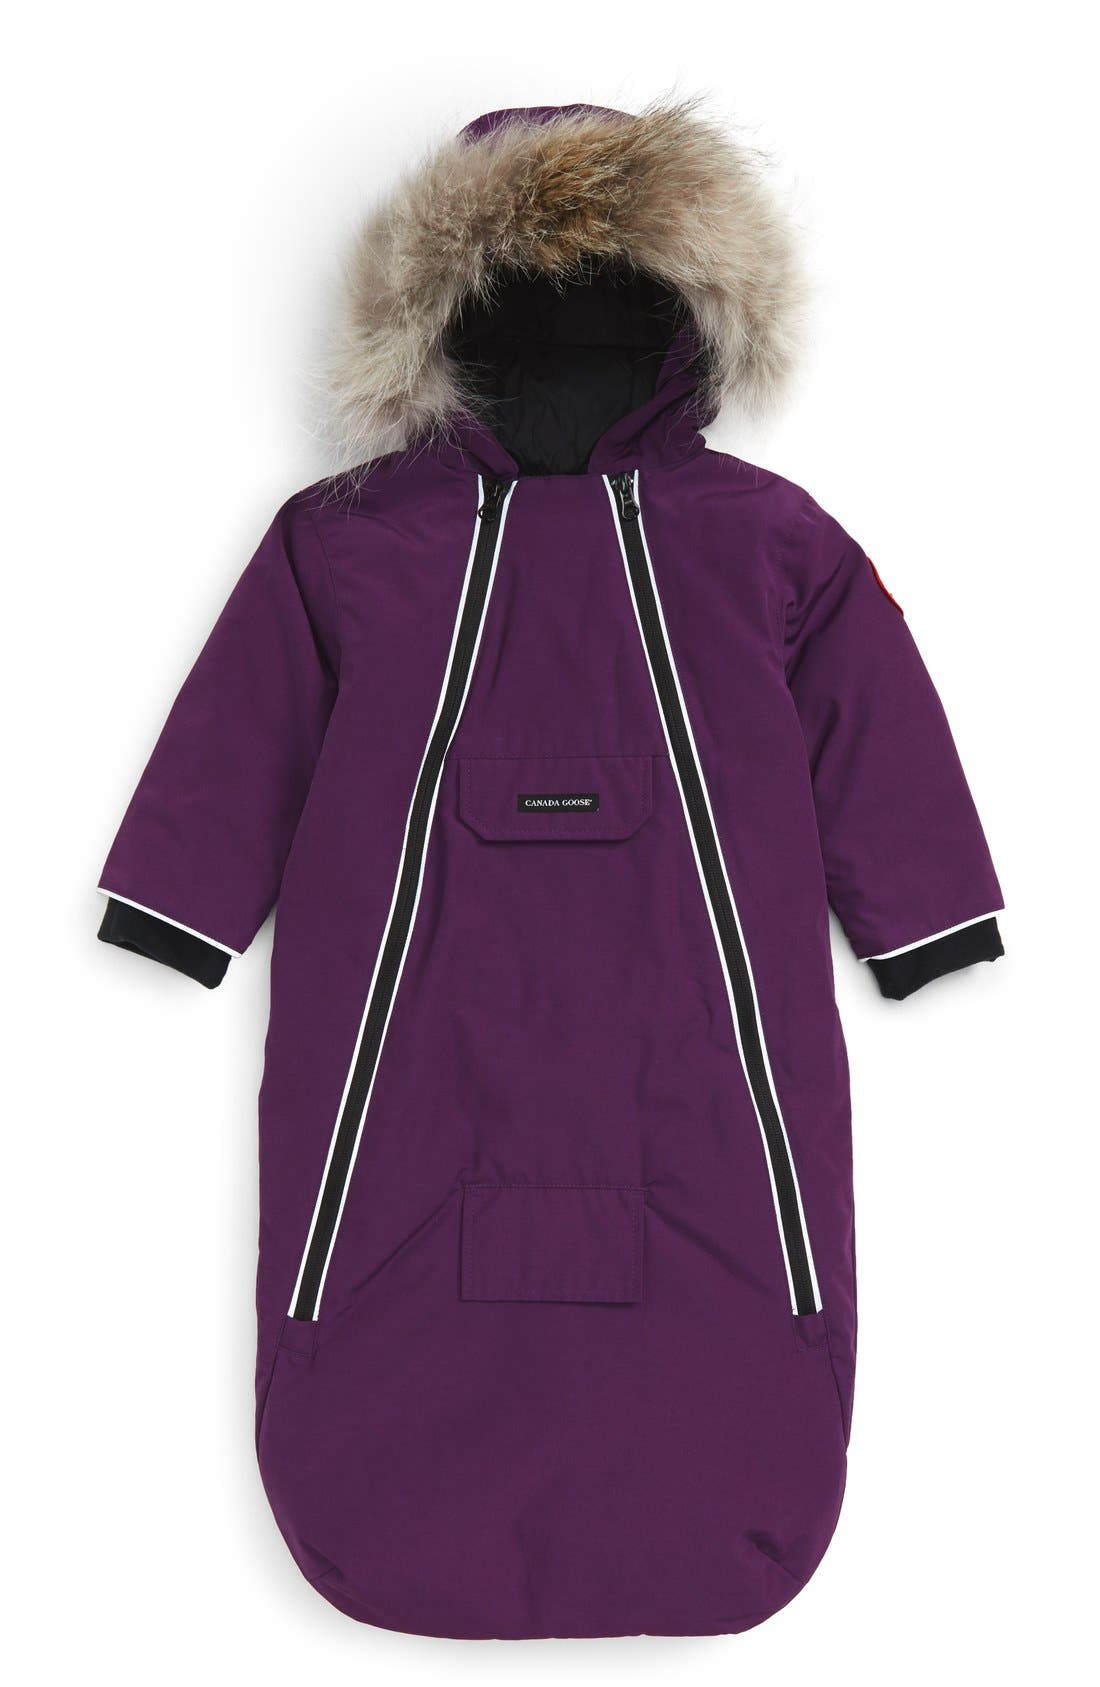 CANADA GOOSE 'Bunny' Hooded Bunting with Genuine Coyote